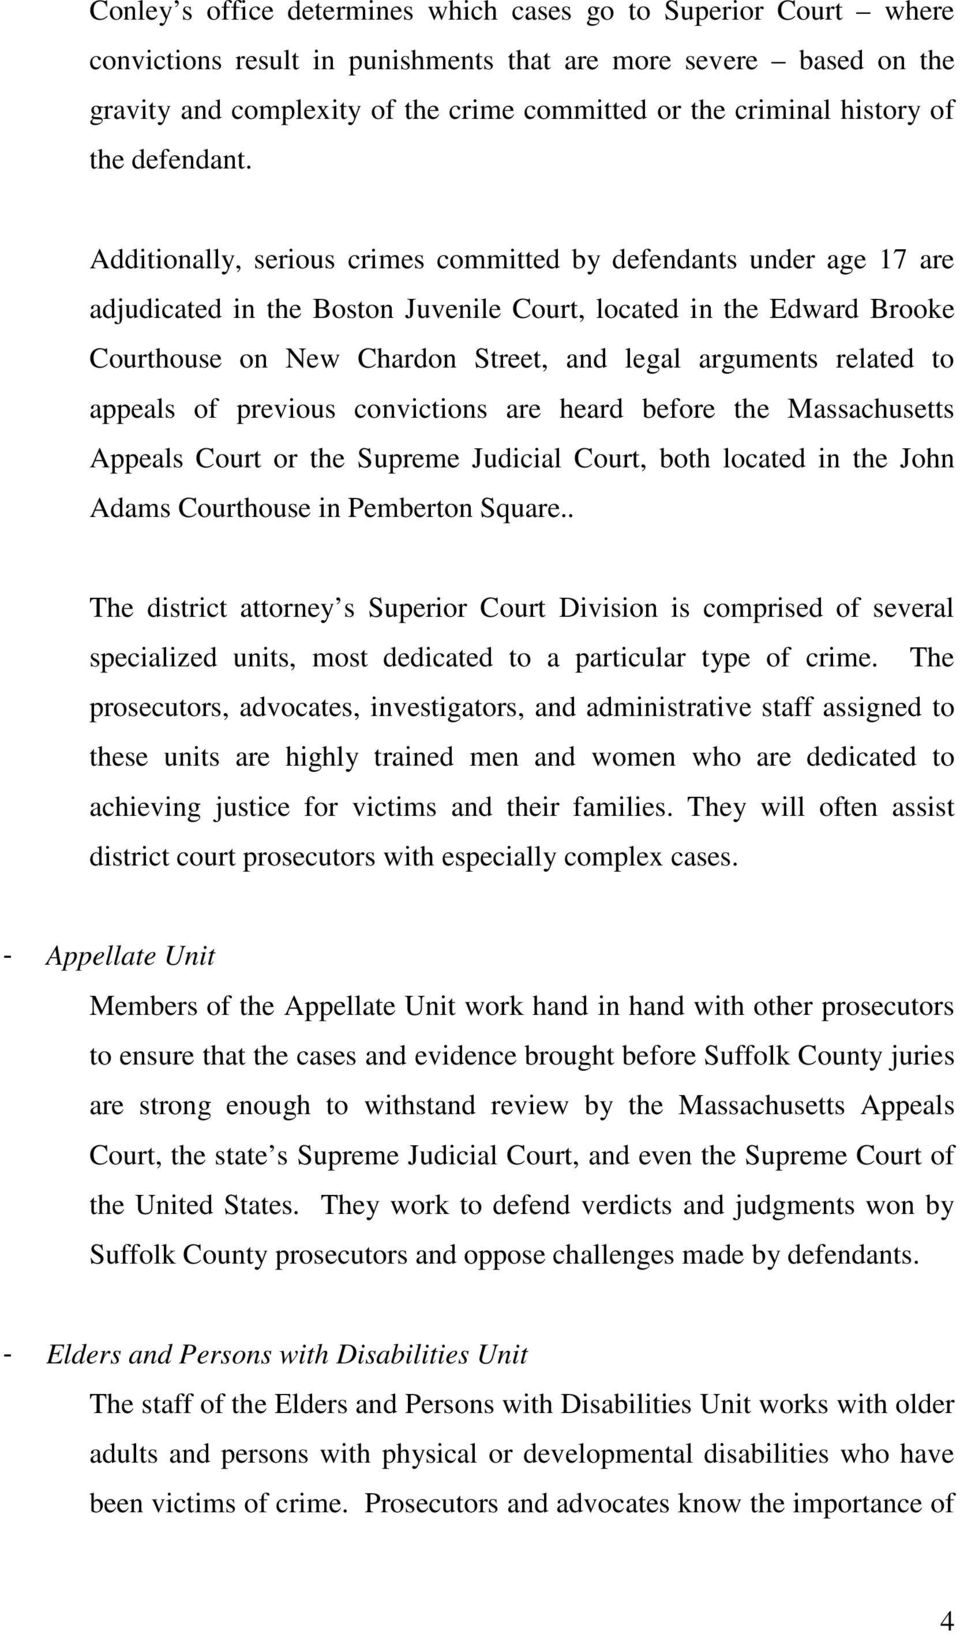 Additionally, serious crimes committed by defendants under age 17 are adjudicated in the Boston Juvenile Court, located in the Edward Brooke Courthouse on New Chardon Street, and legal arguments